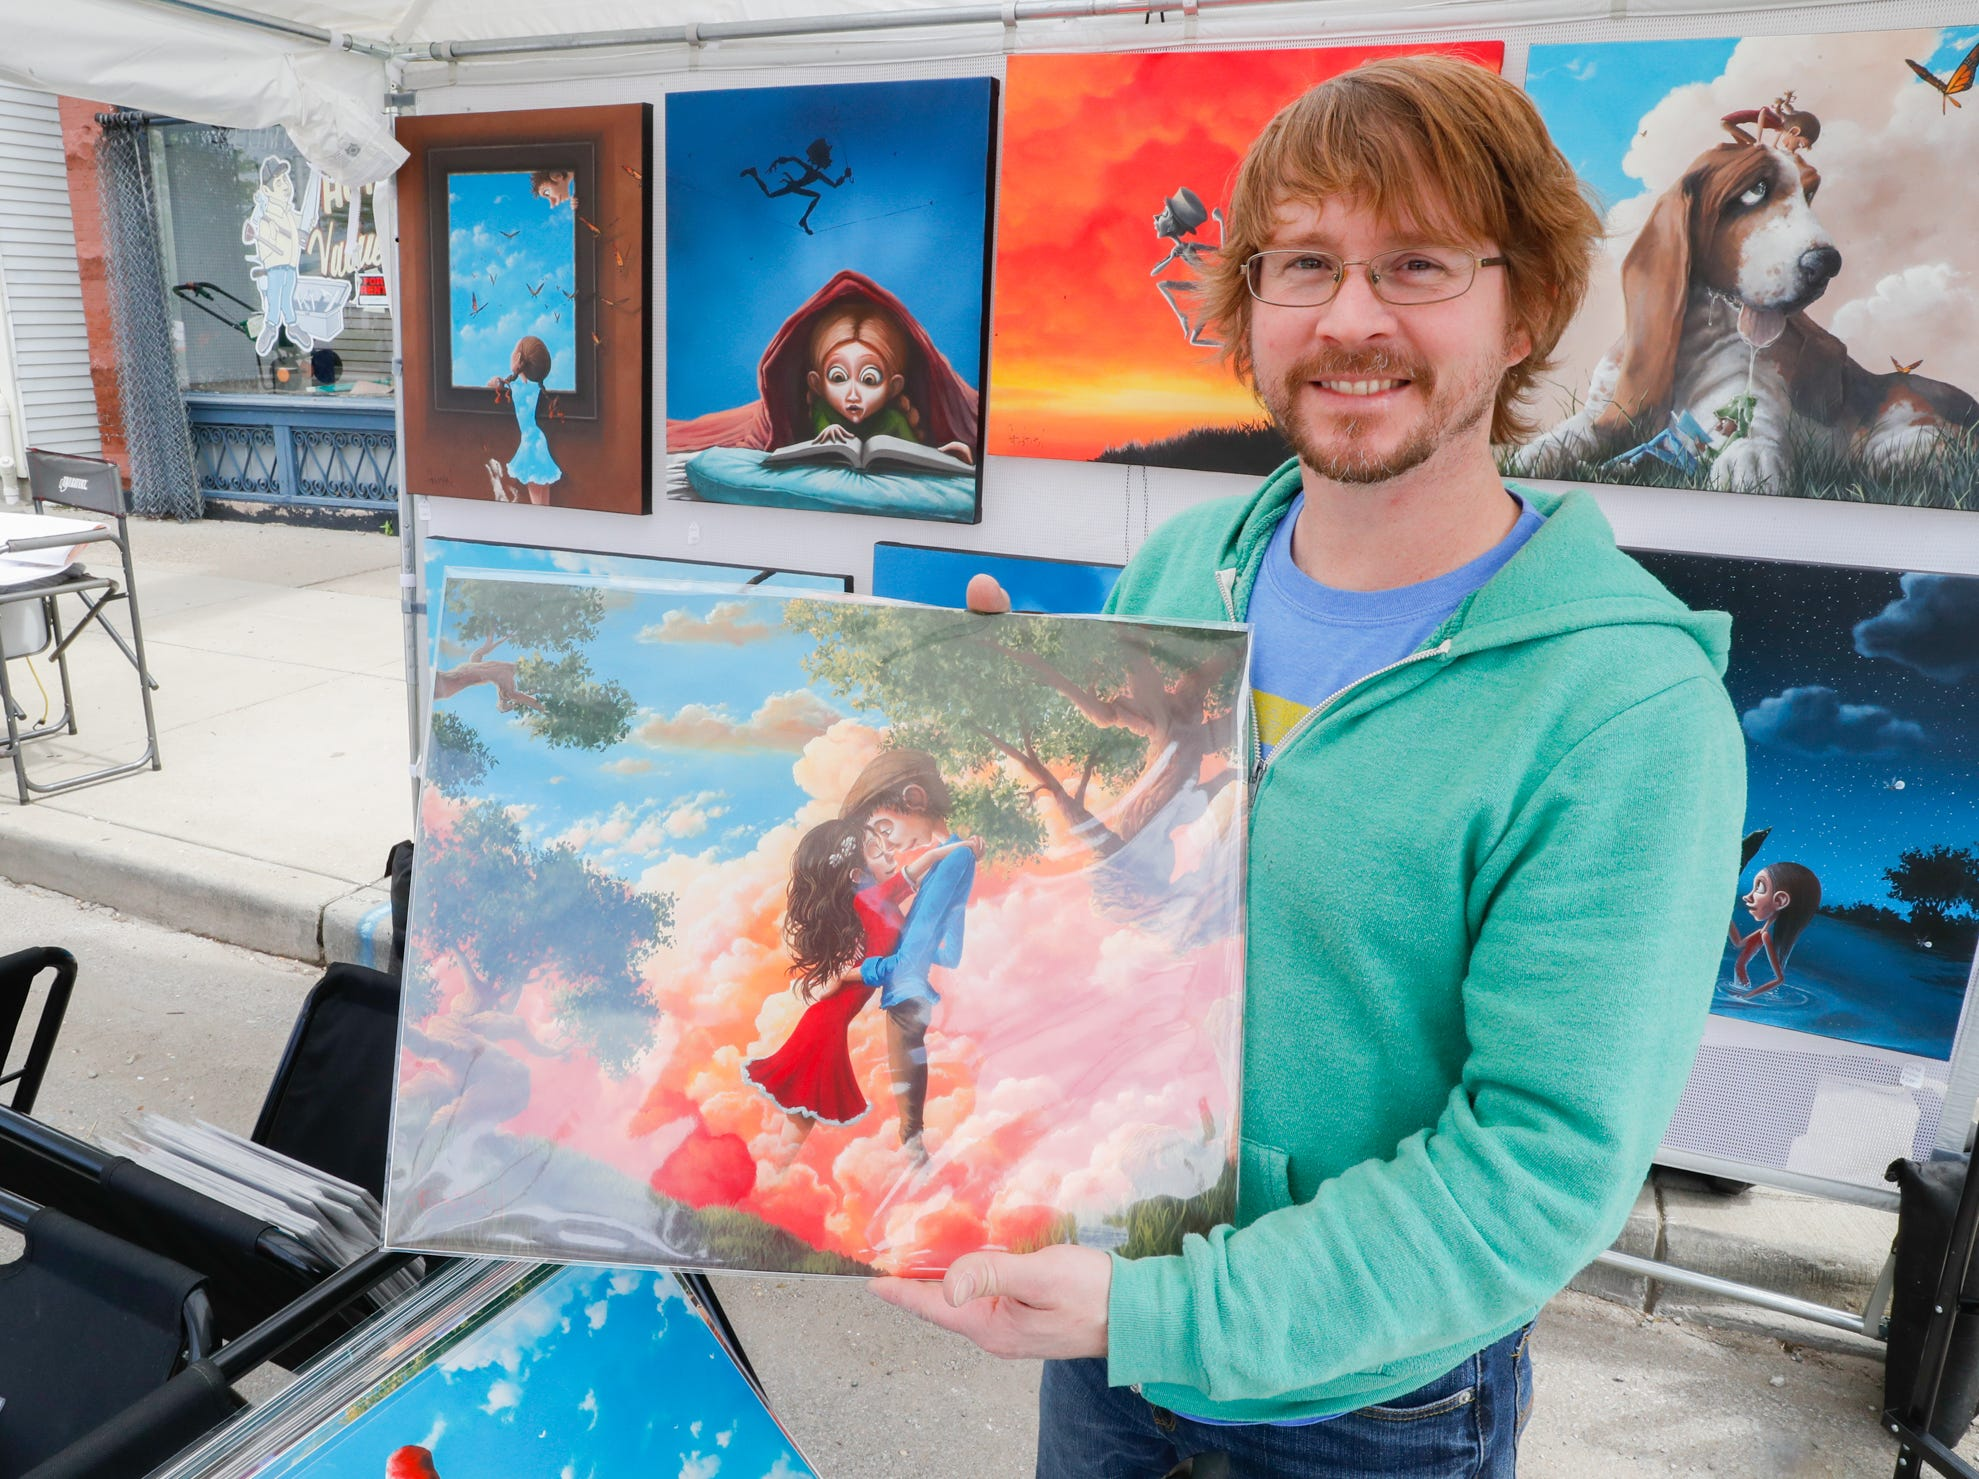 Artist Gabriel Lehman holds one of his prints up for sale at his booth, during the Virginia Avenue Music Fest, held in Fountain Square, located in Indianapolis, on Saturday, May 11, 2019.